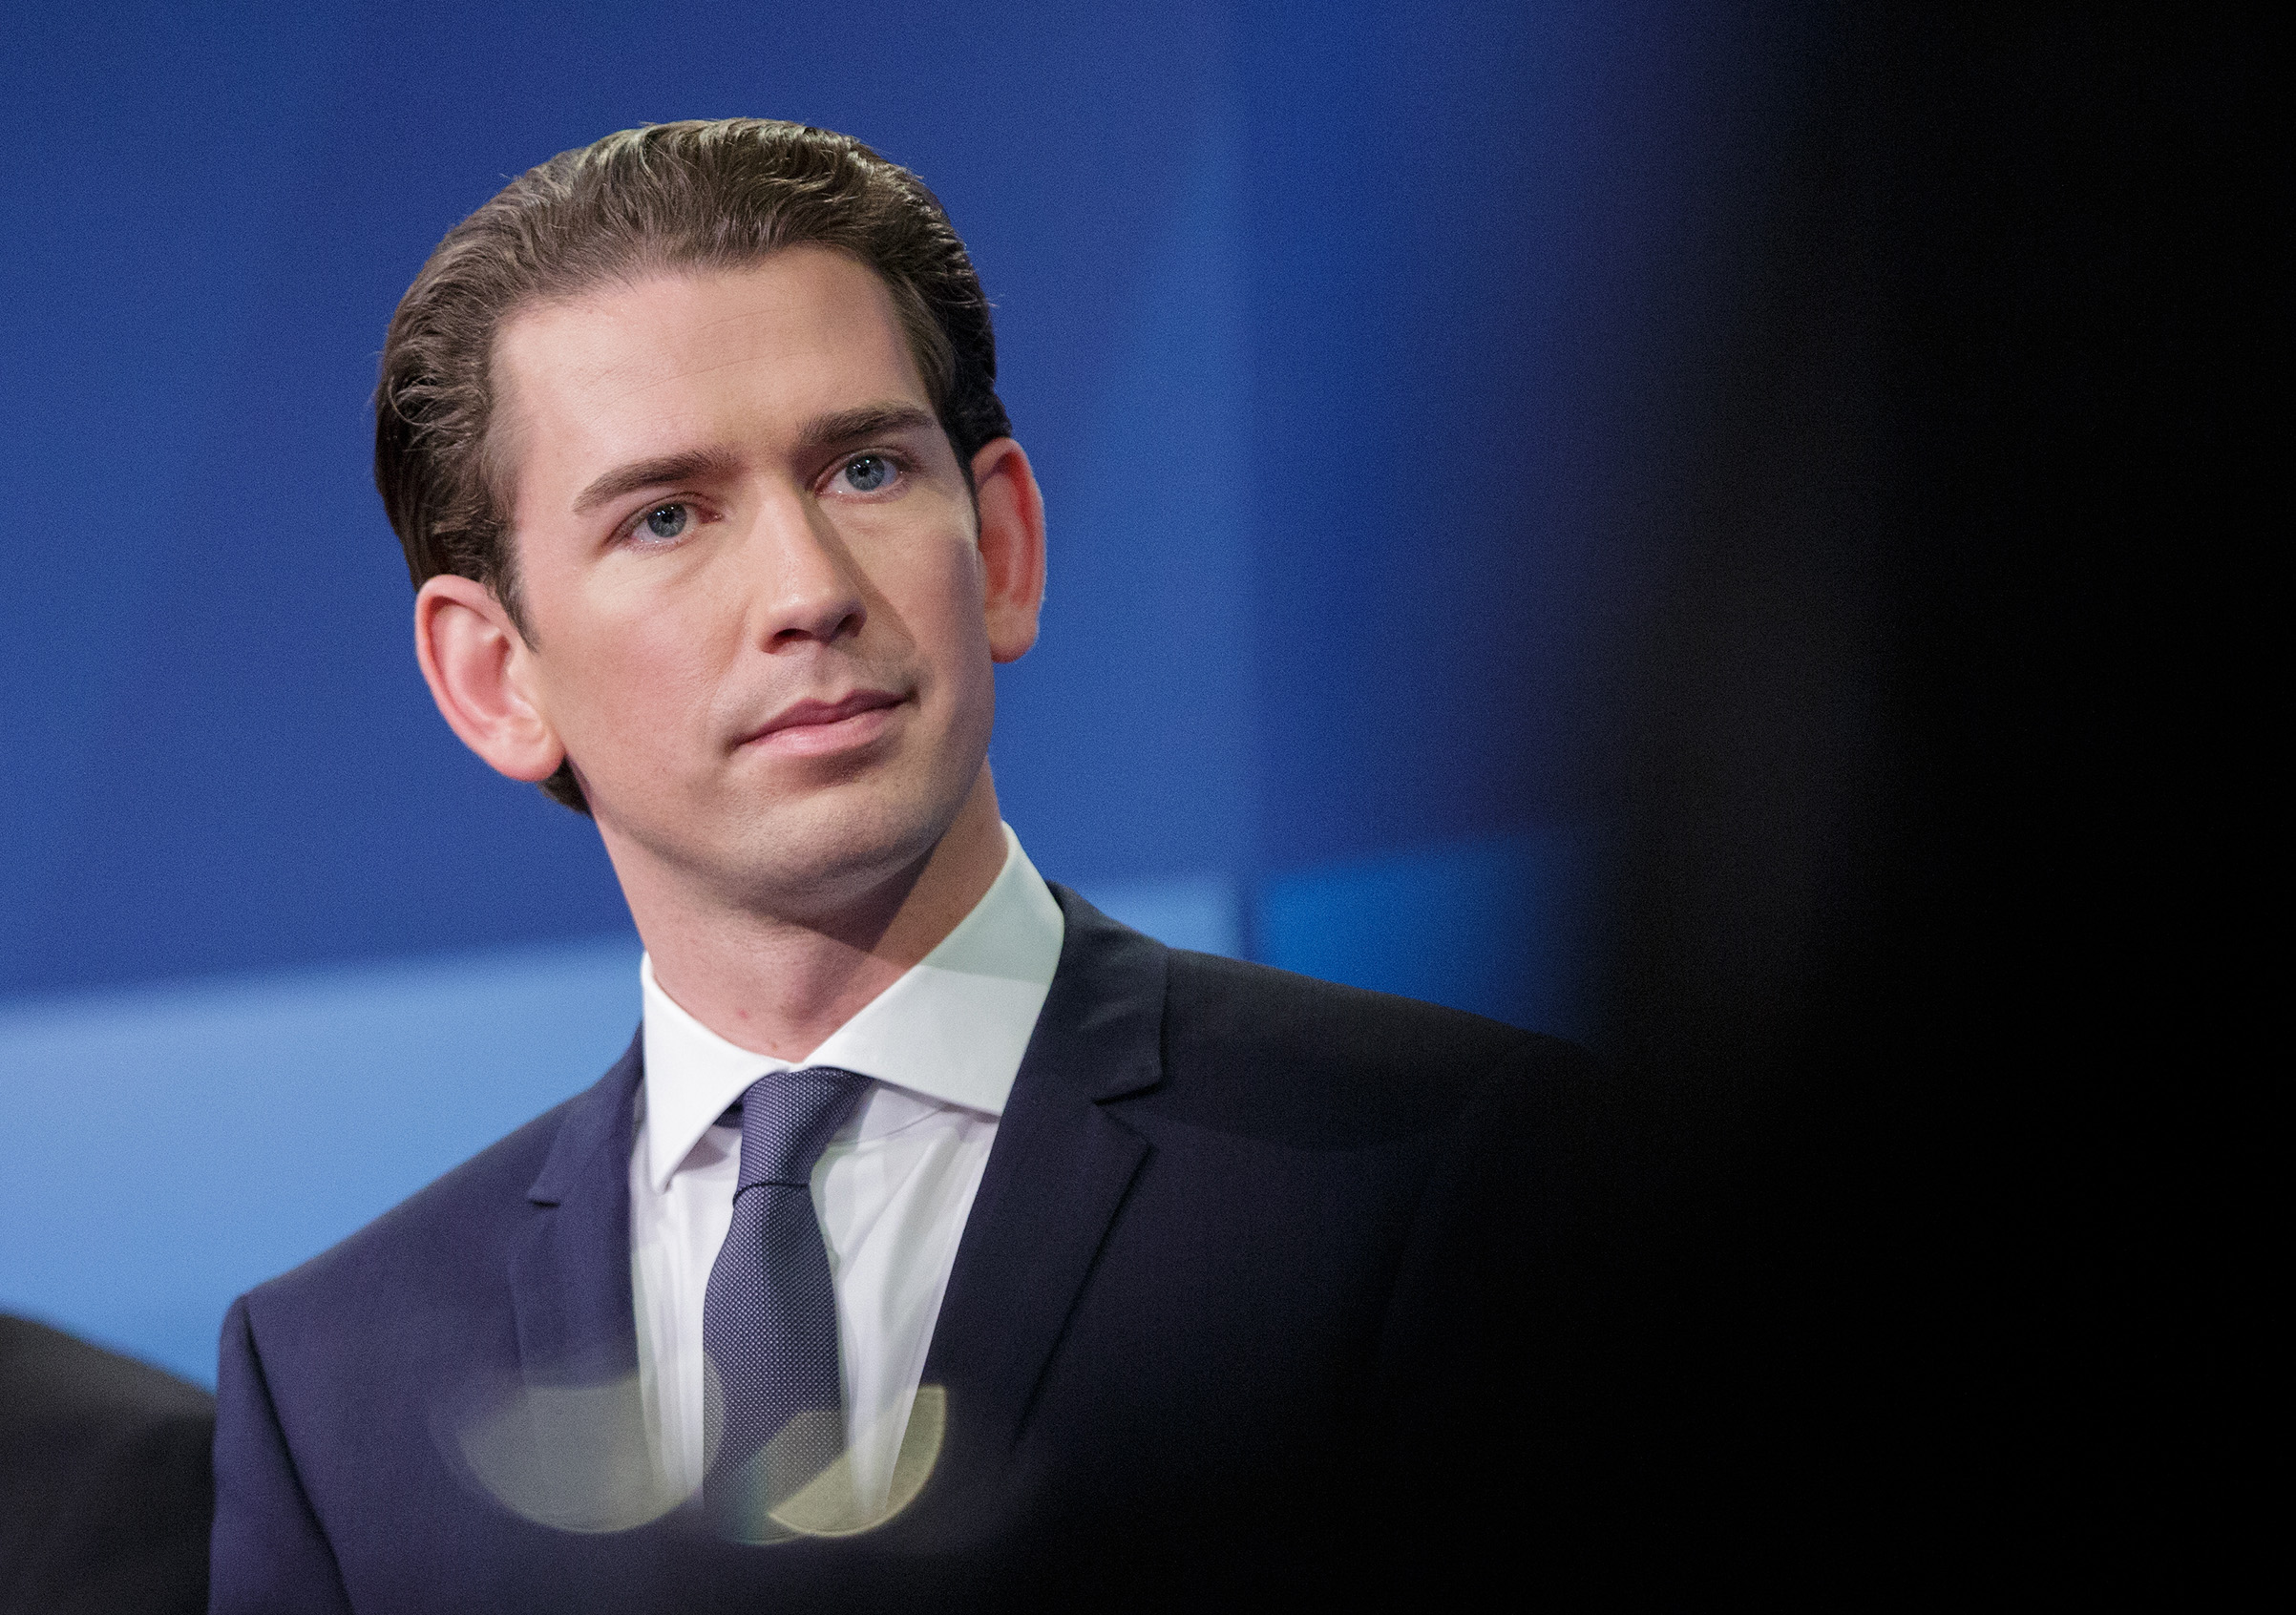 Sebastian Kurz, Austria's foreign minister and leader of the People's Party, participates in a television debate ahead of a federal election in Vienna, Austria, on Oct. 15, 2017.